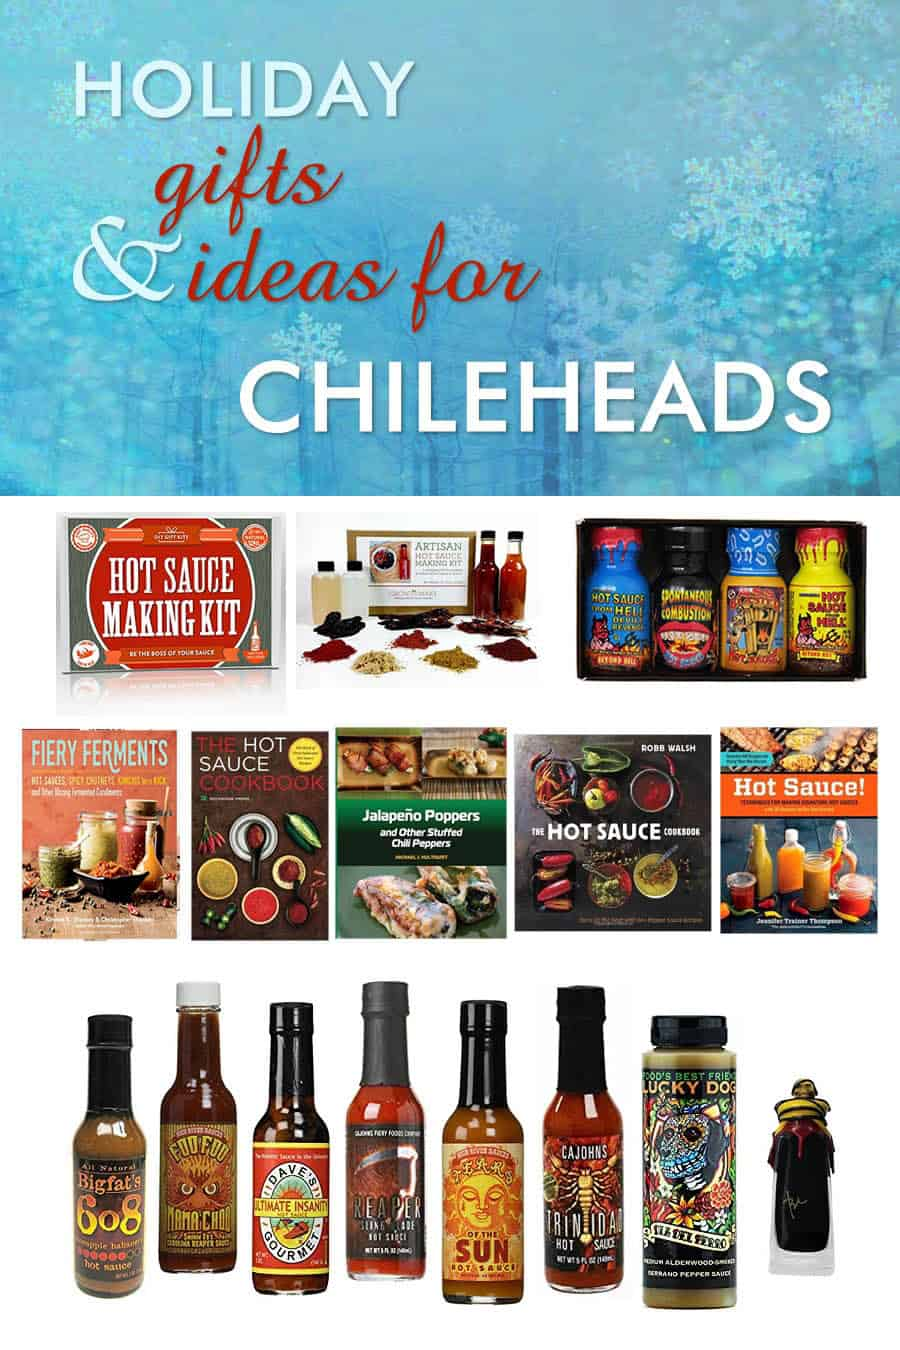 Holiday Gifts and Ideas for Chileheads